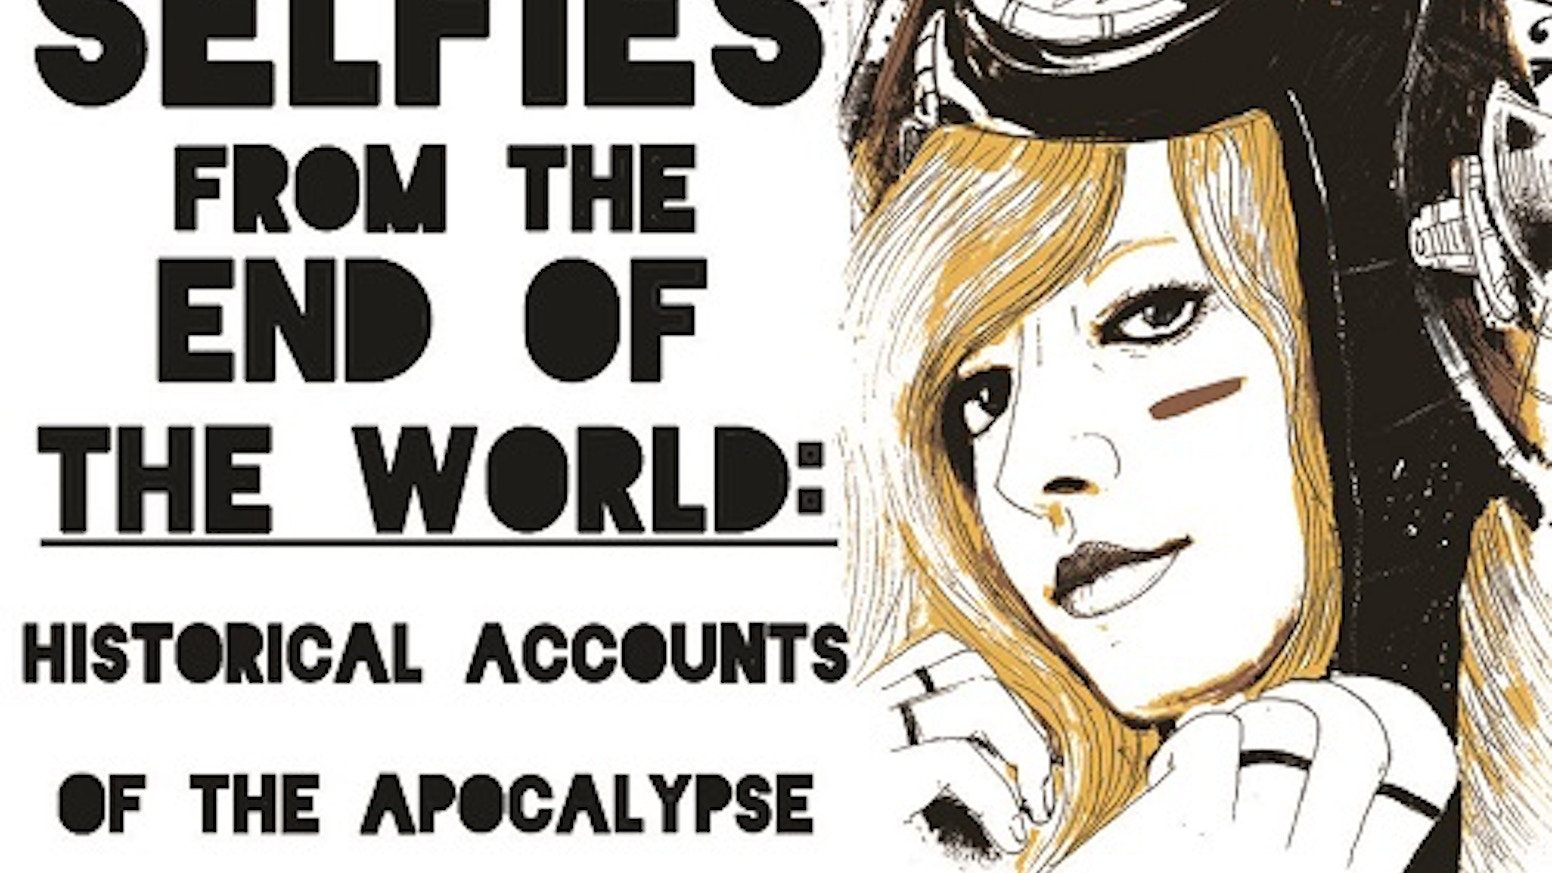 A collection of tales from the apocalypse and post-apocalypse.